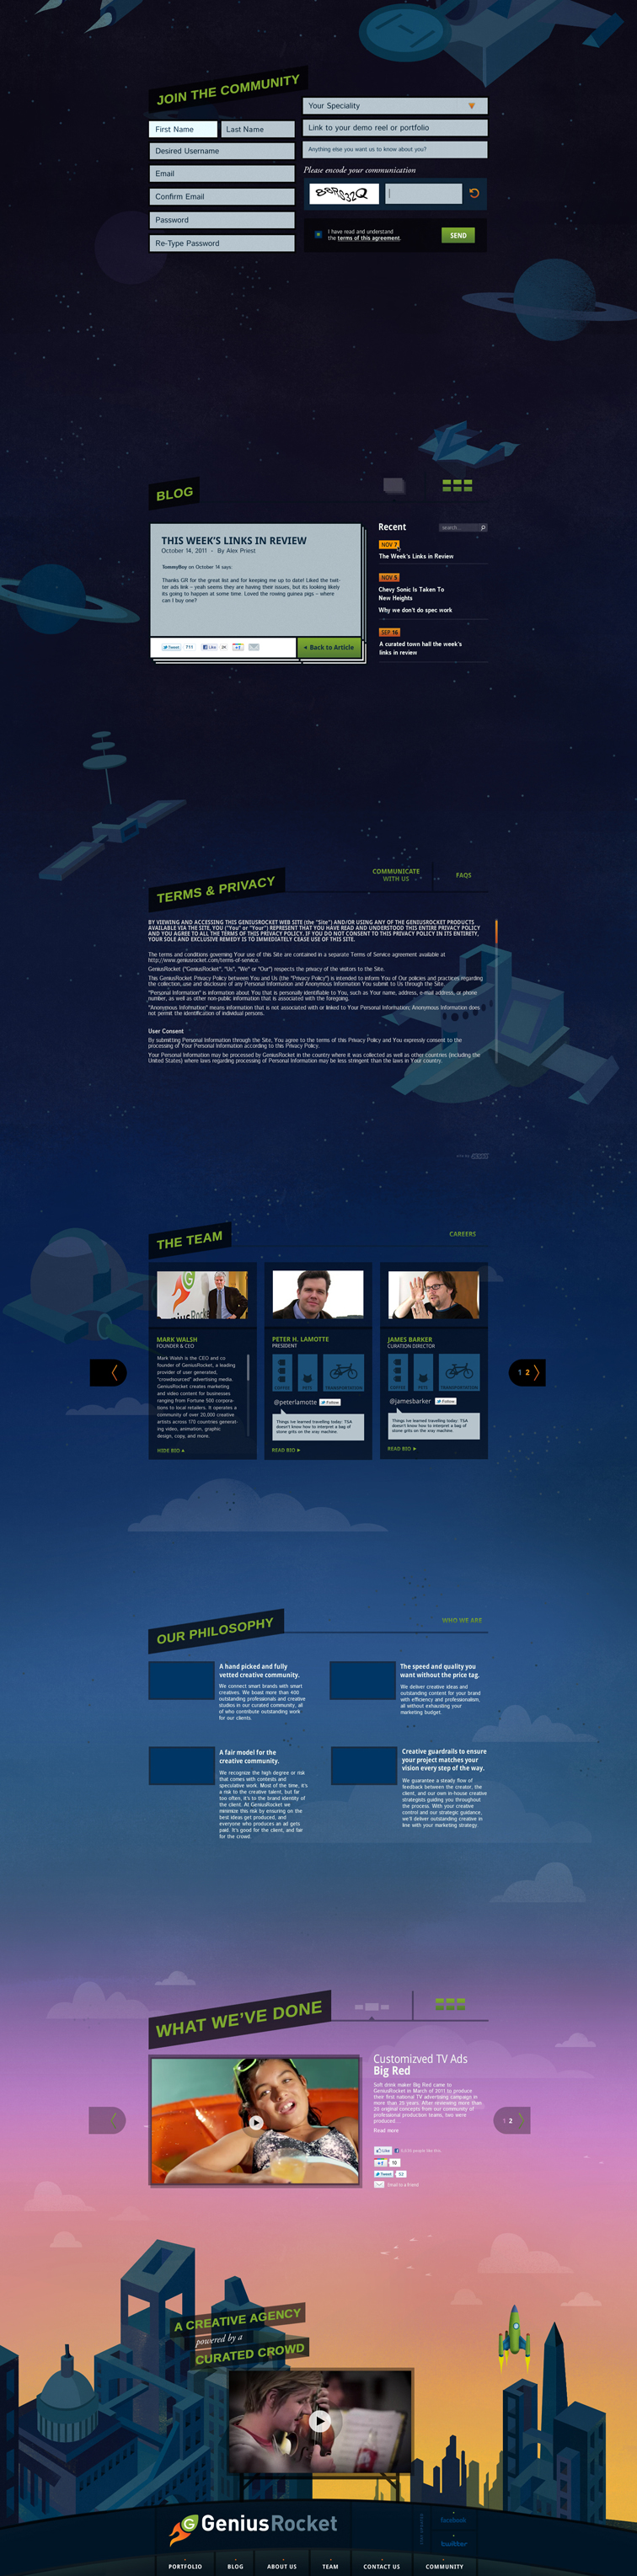 GeniusRocket Website Redesign 2296